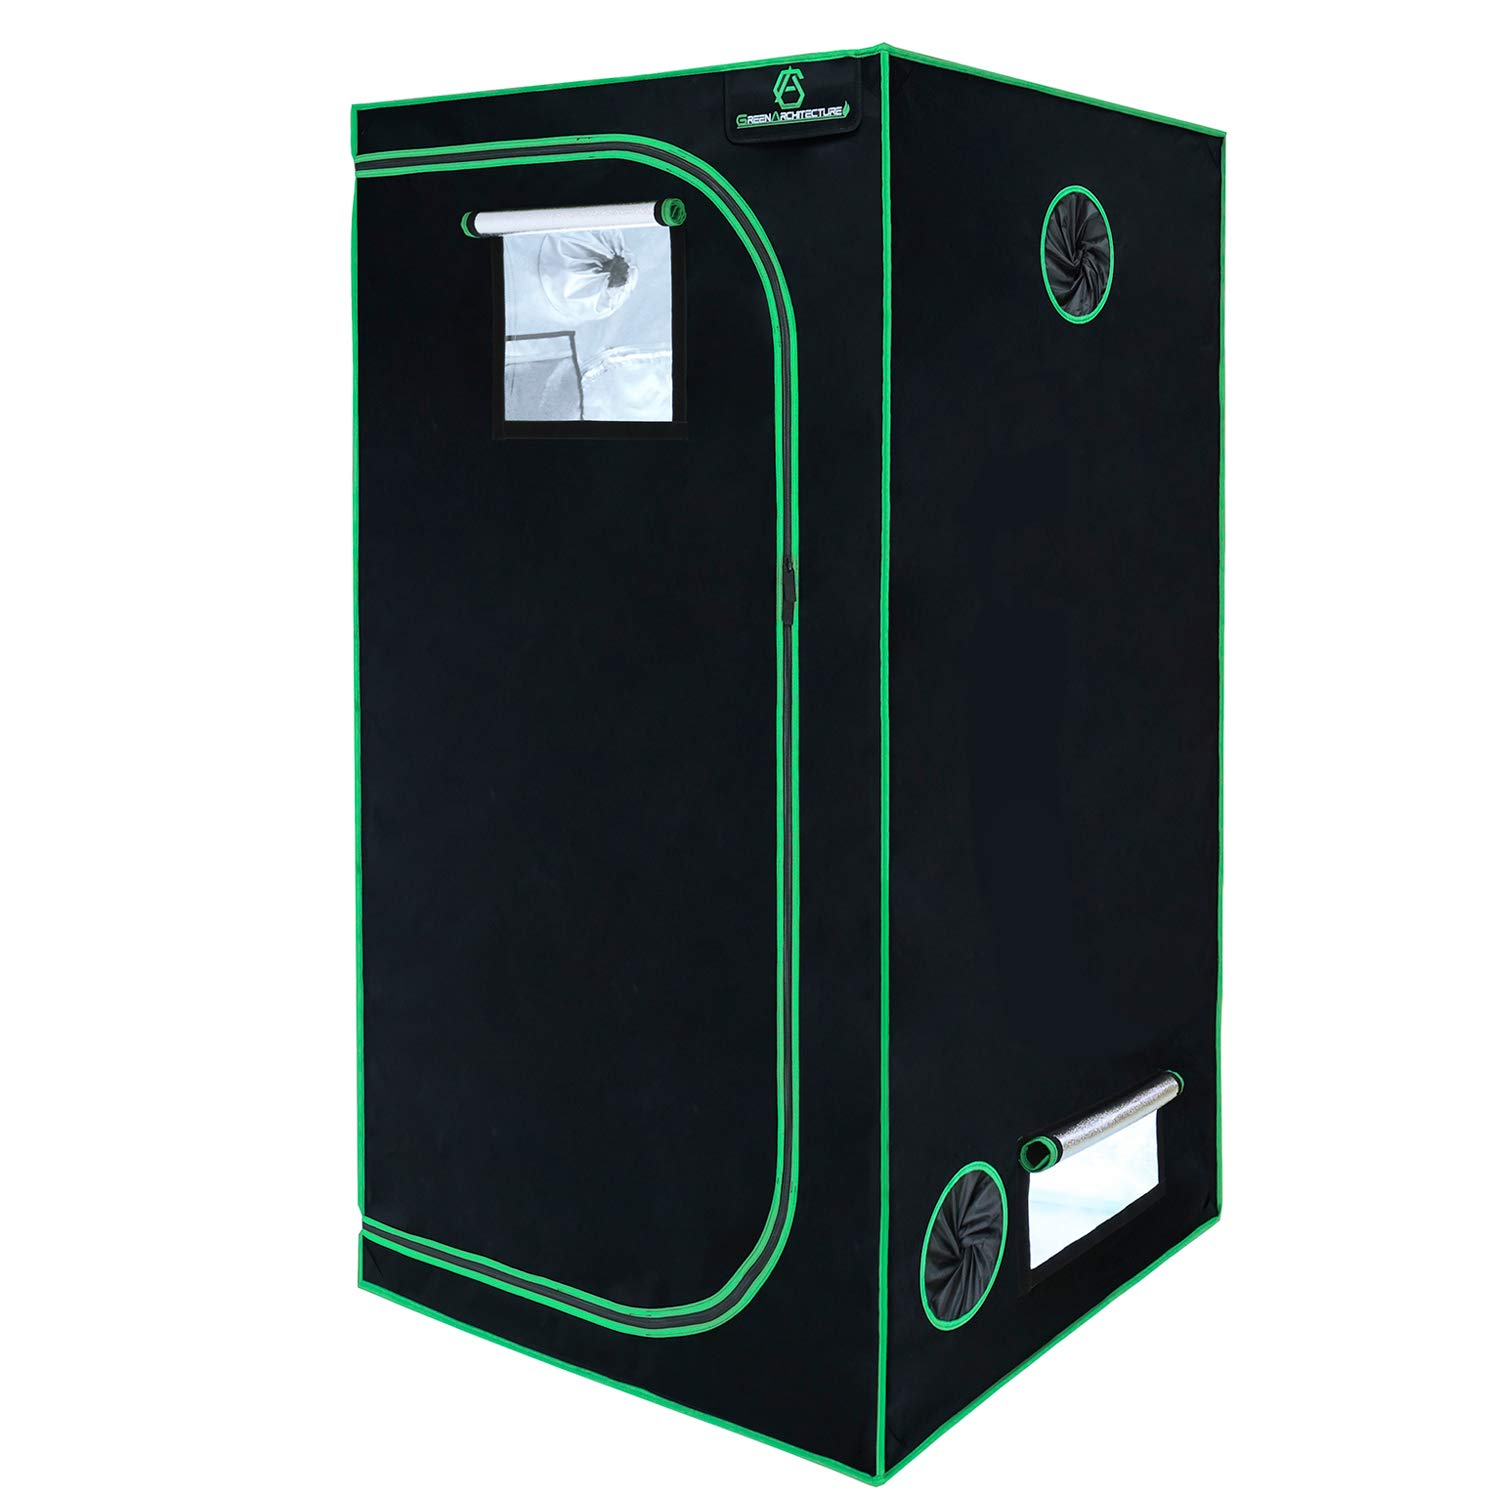 GA Grow Tent 24x24x48 Reflective Mylar Hydroponic Grow Tent with Observation Window and Waterproof Floor Tray for Indoor Plant Growing.2x2 (for 1 Plants)